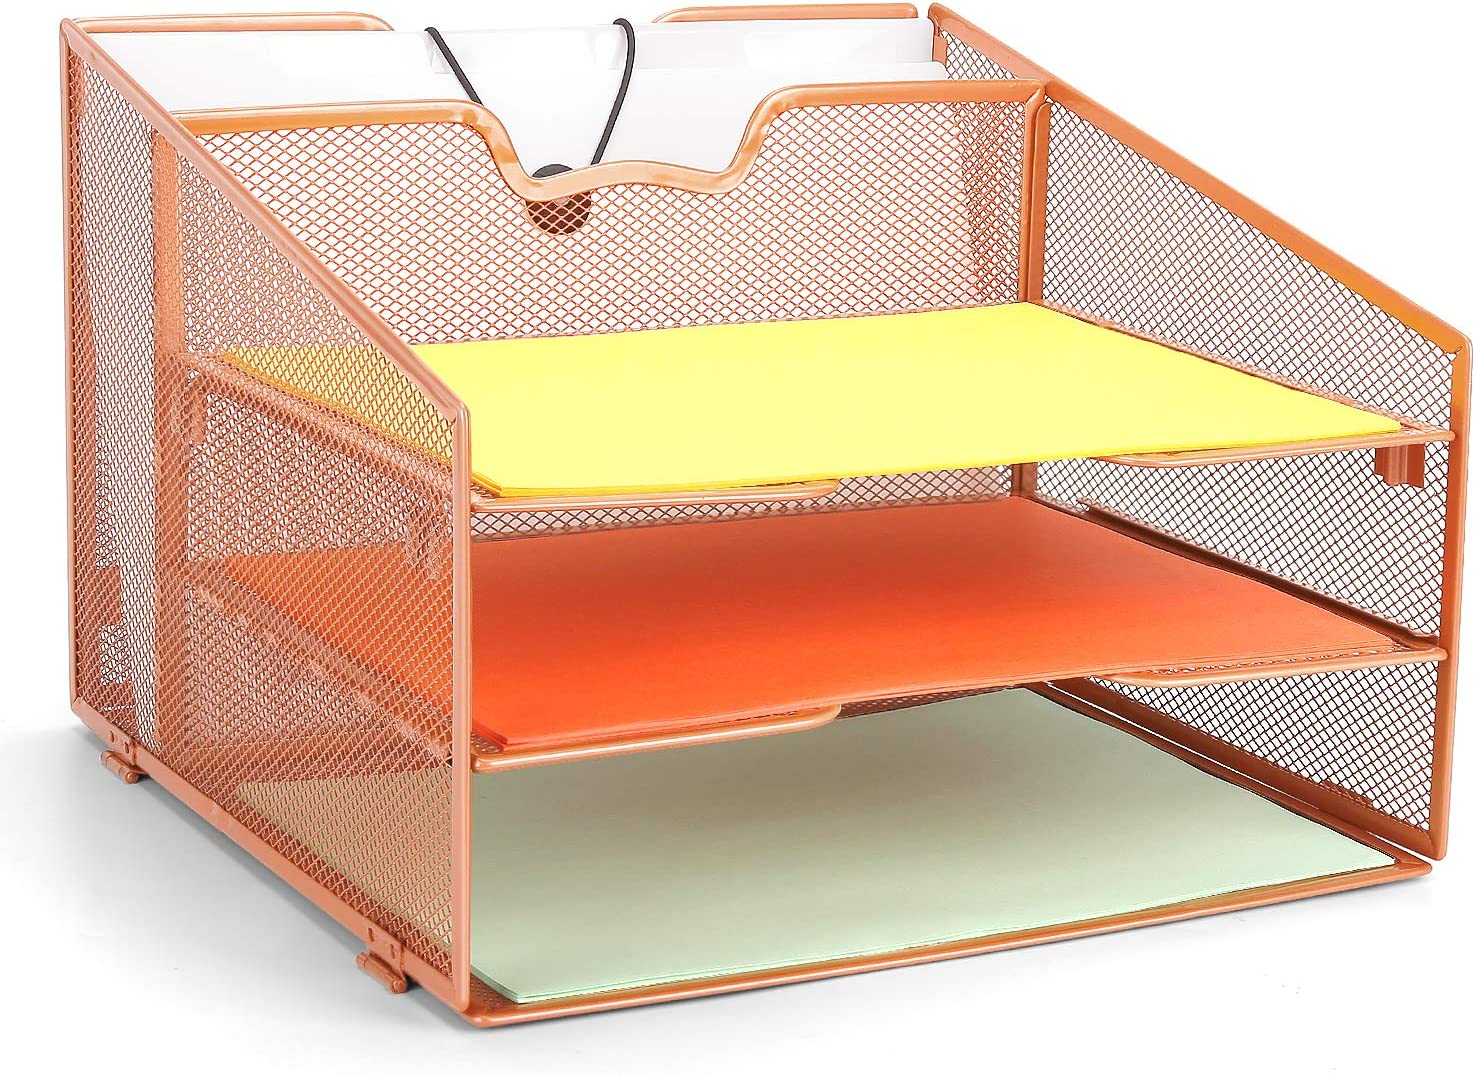 Rose Gold Desk Organizer, ProAid Desktop File Tray Organizer with 4 Independent Compartments, Document Letter Tray Holder Perfect for Office and Home